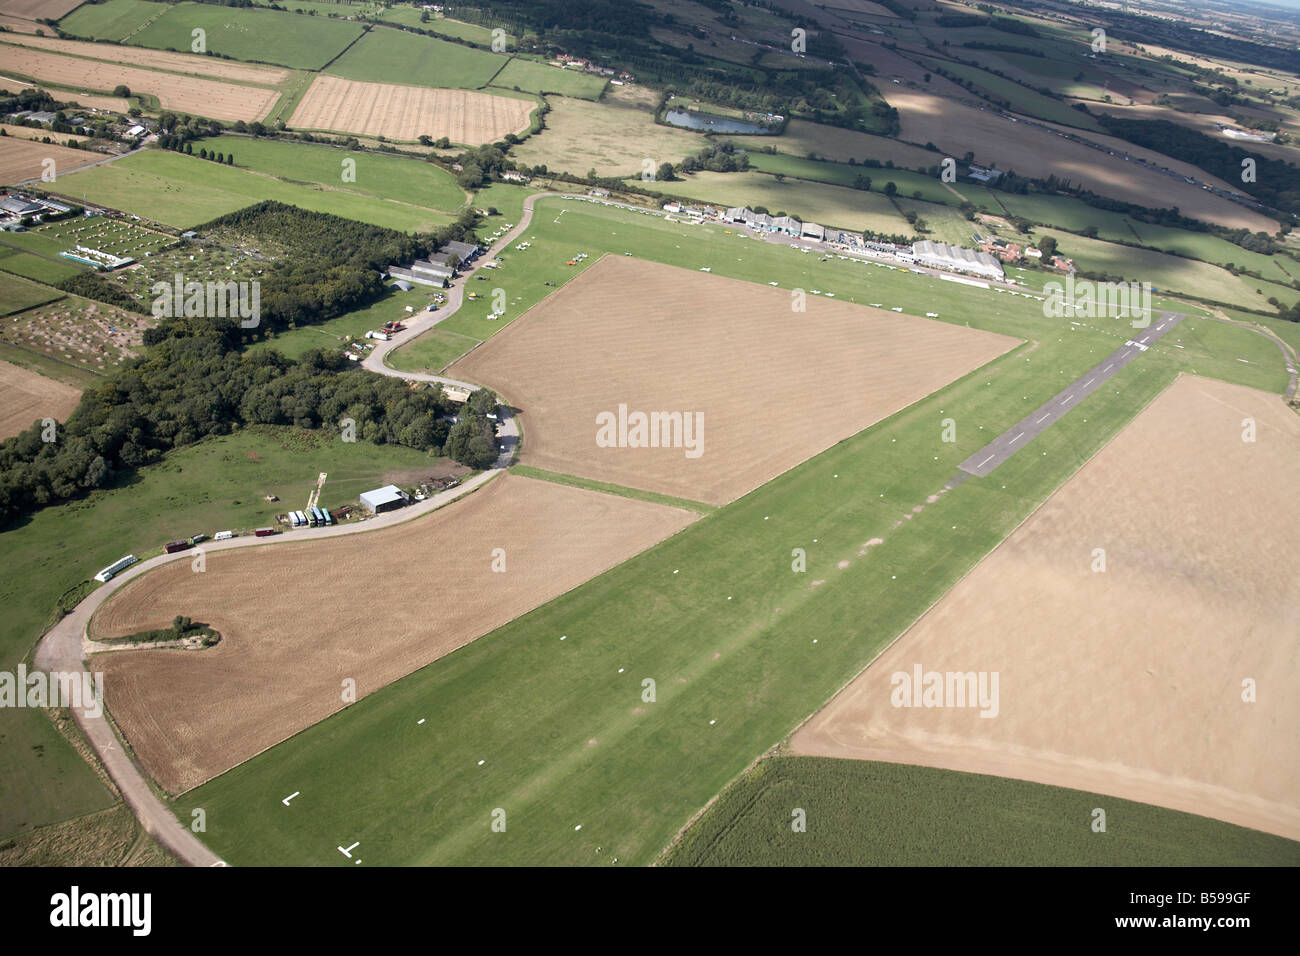 Aerial view north of Stapleford Tawney Aerodrome Ongar Road A113 country fields farms Romford Essex RM4 England - Stock Image